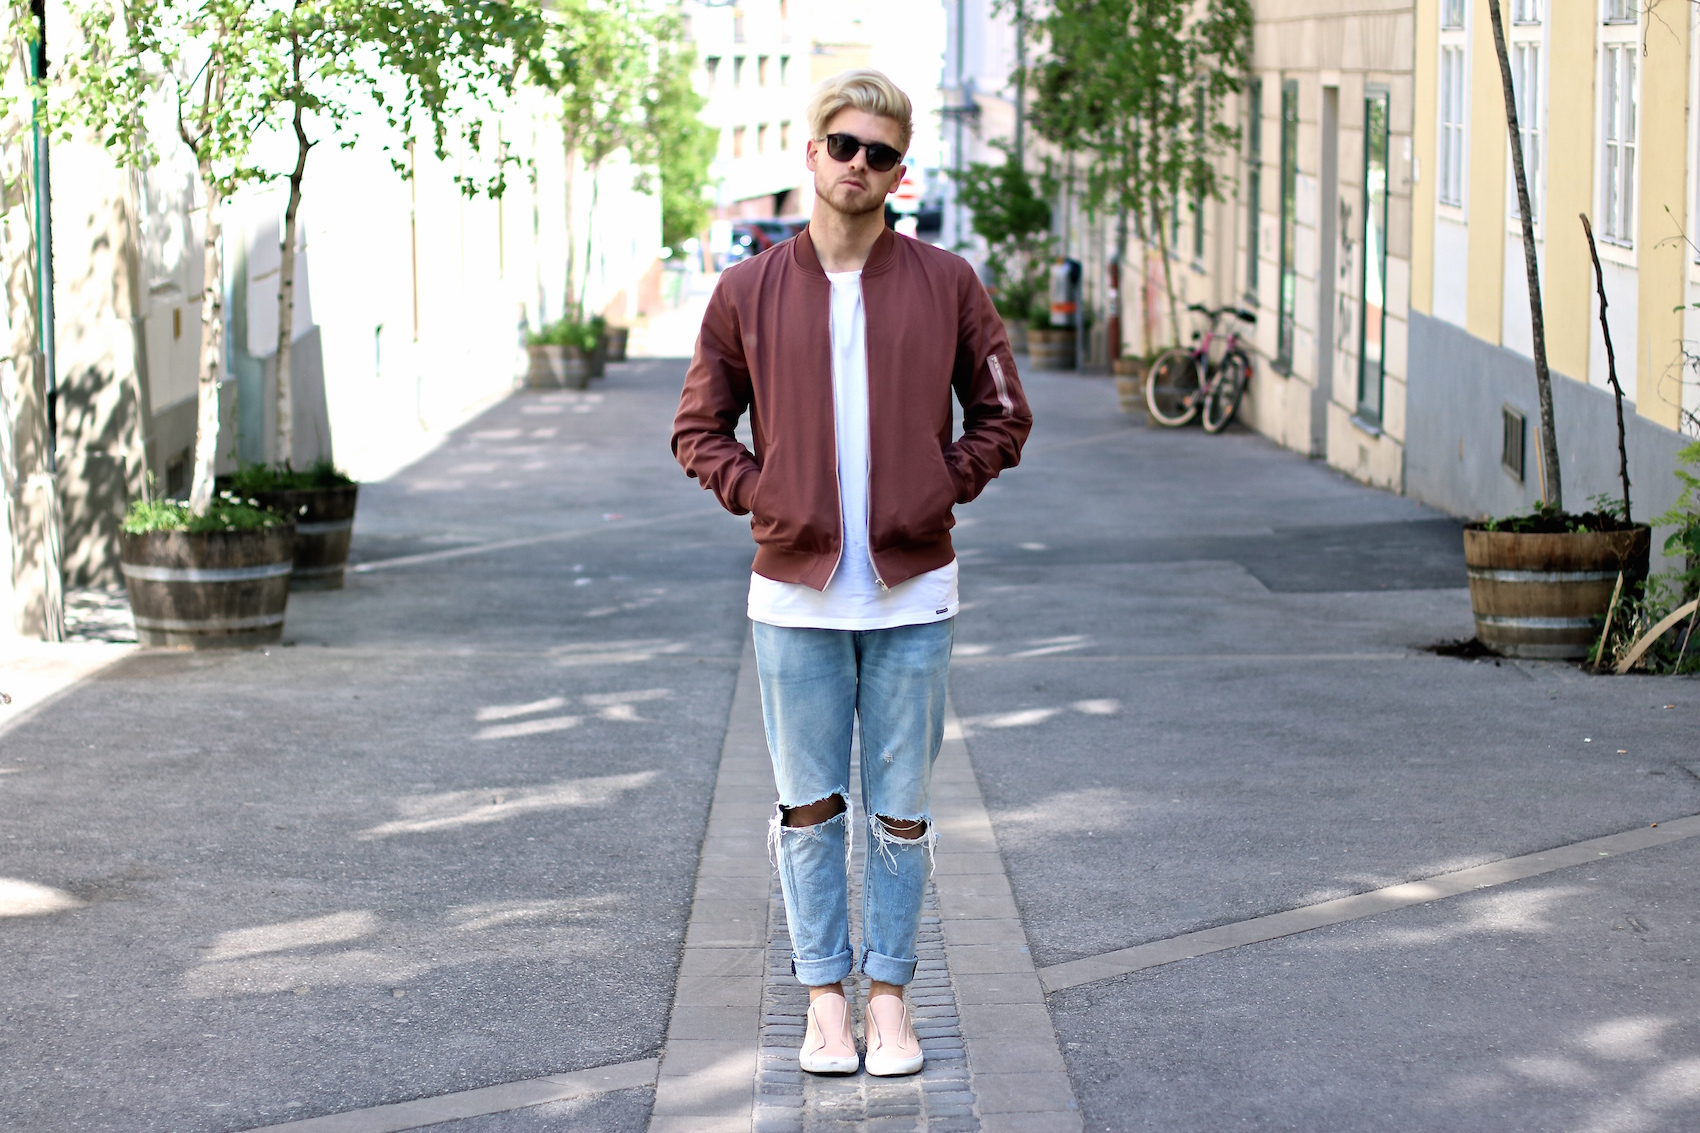 Spring Vibes wearing my Dusty Pink Bomber Jacket & Ripped Jeans